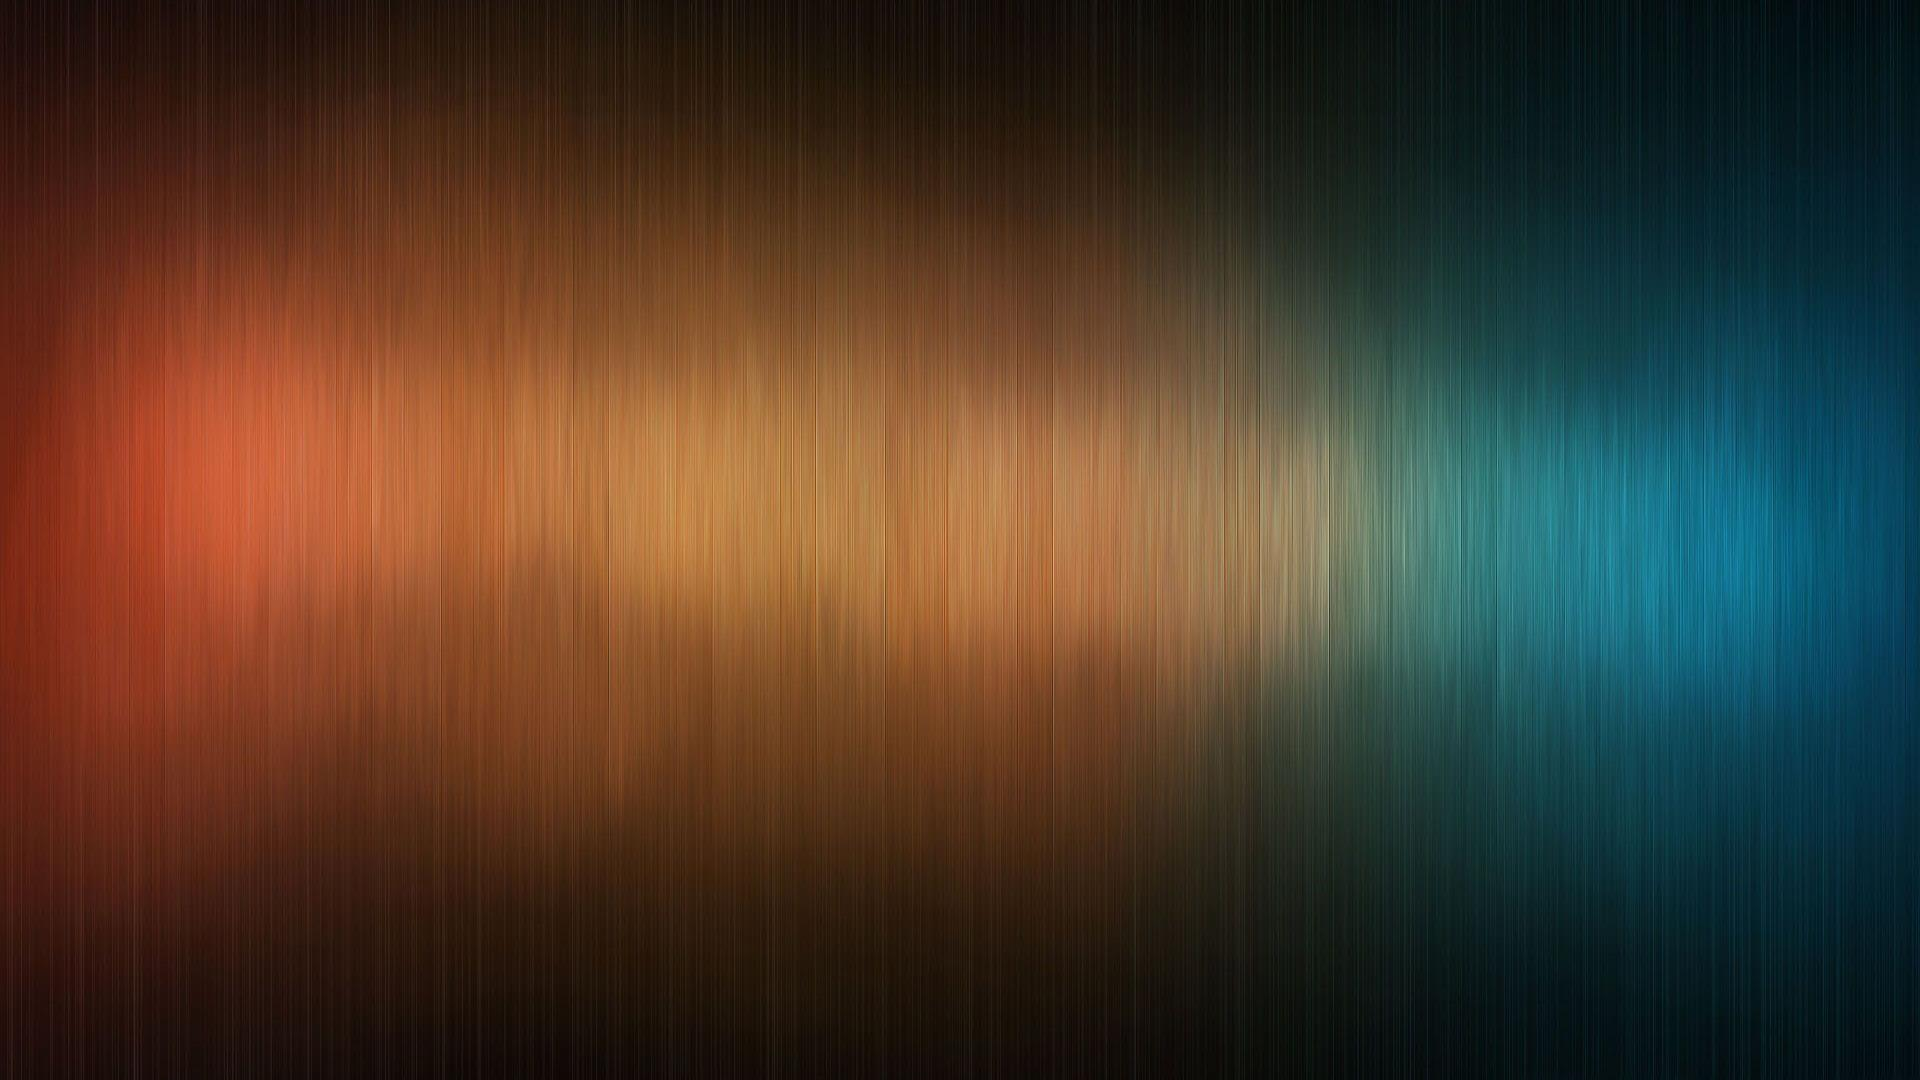 518079-background-hd